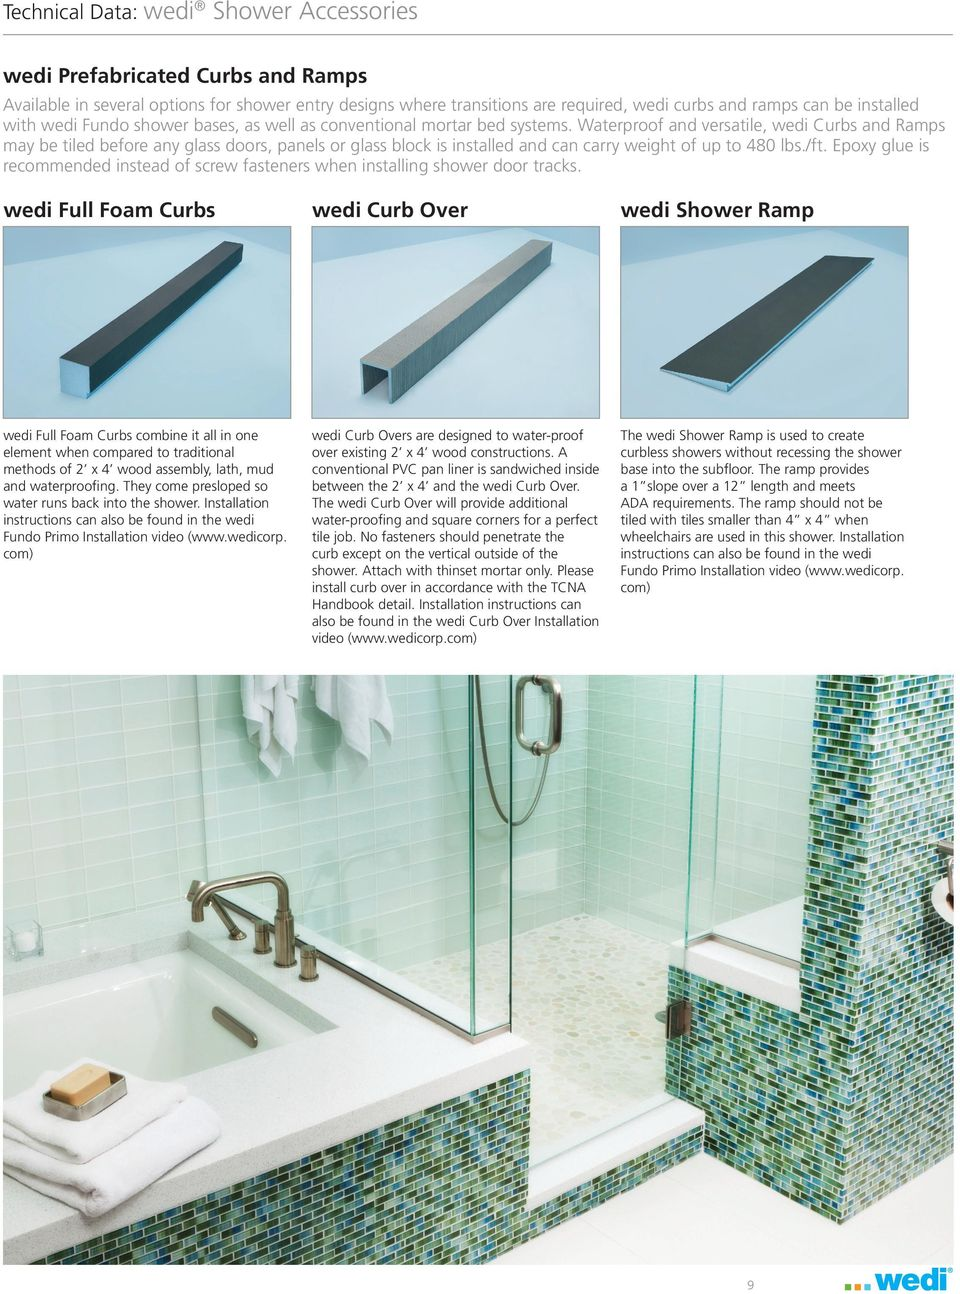 Technical Data. wedi Shower Accessories - PDF